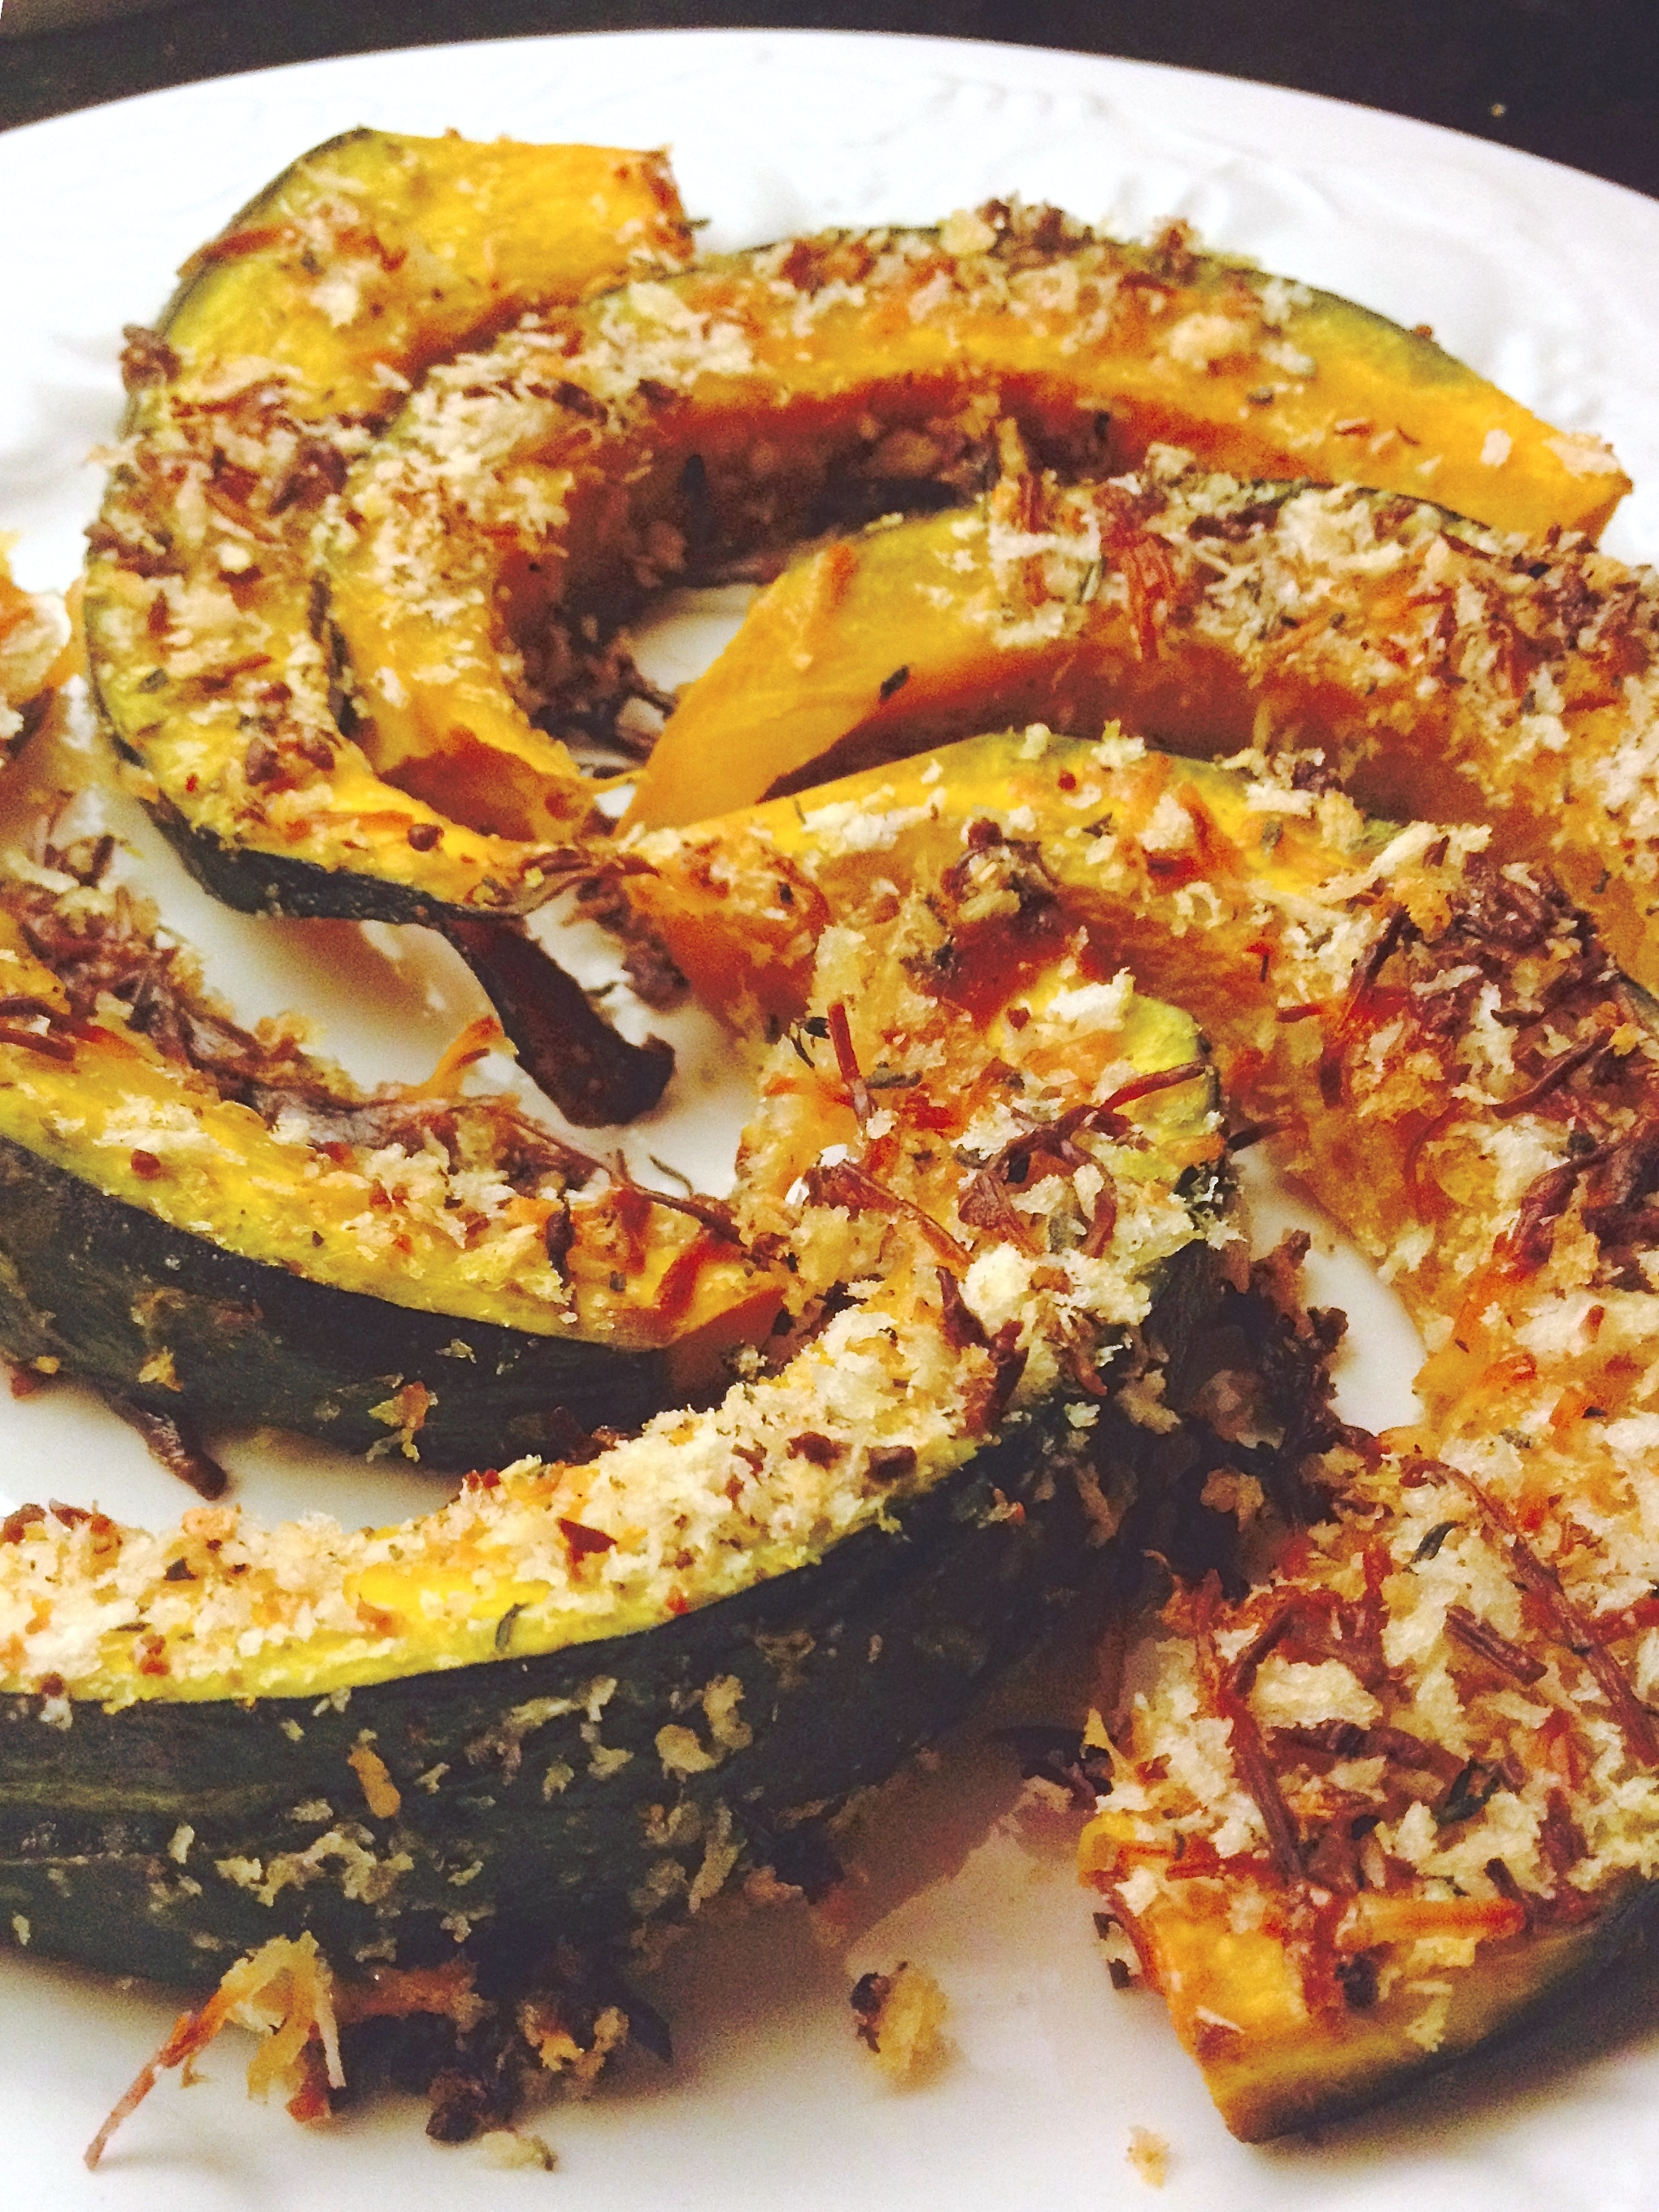 roasted pumpkin wedges with parmesan sage rosemary and thyme :: by radish*rose